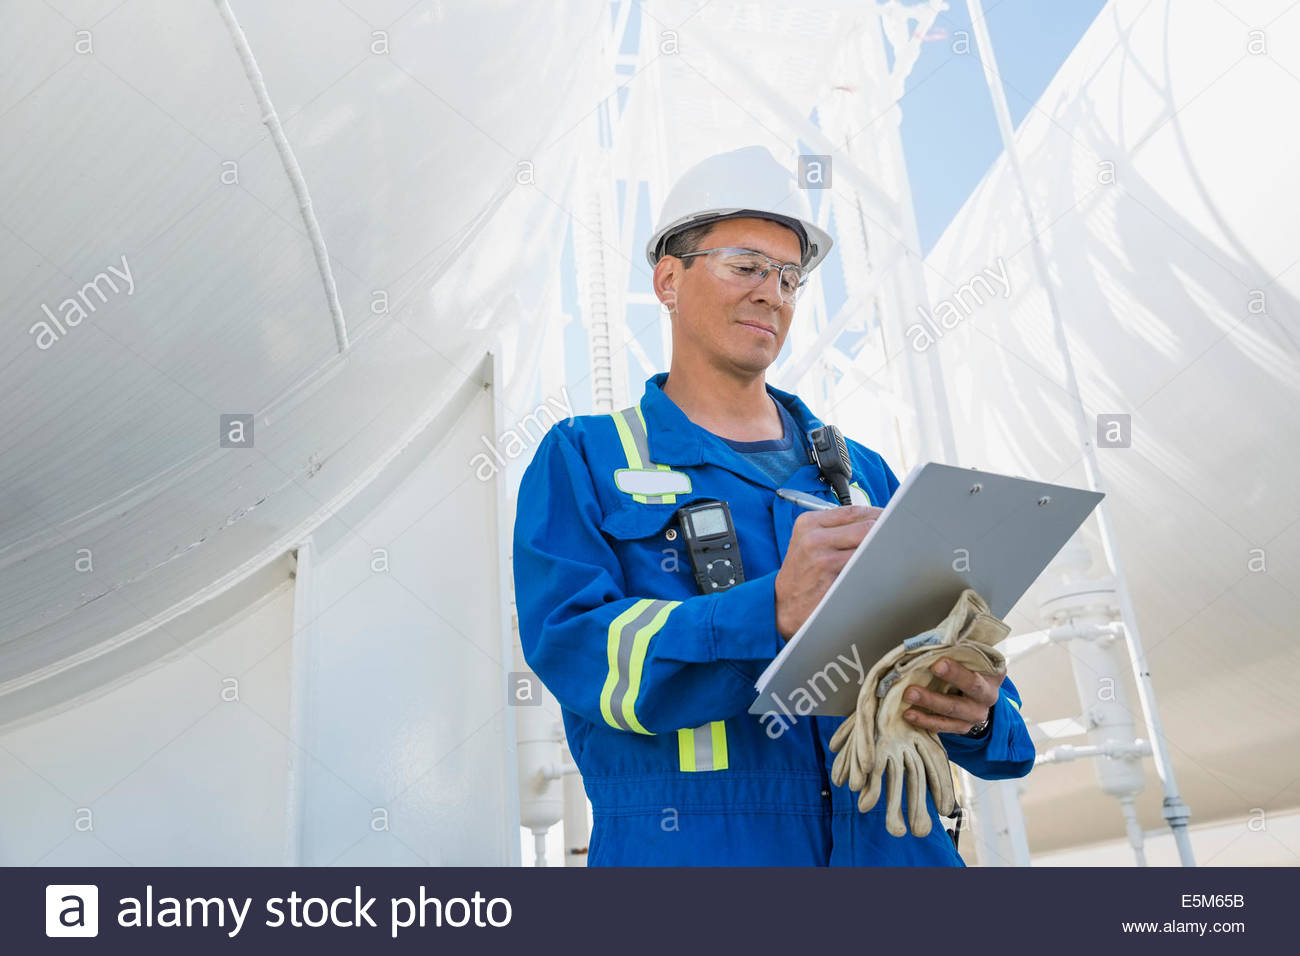 Male worker with clipboard at gas plant - Stock Image